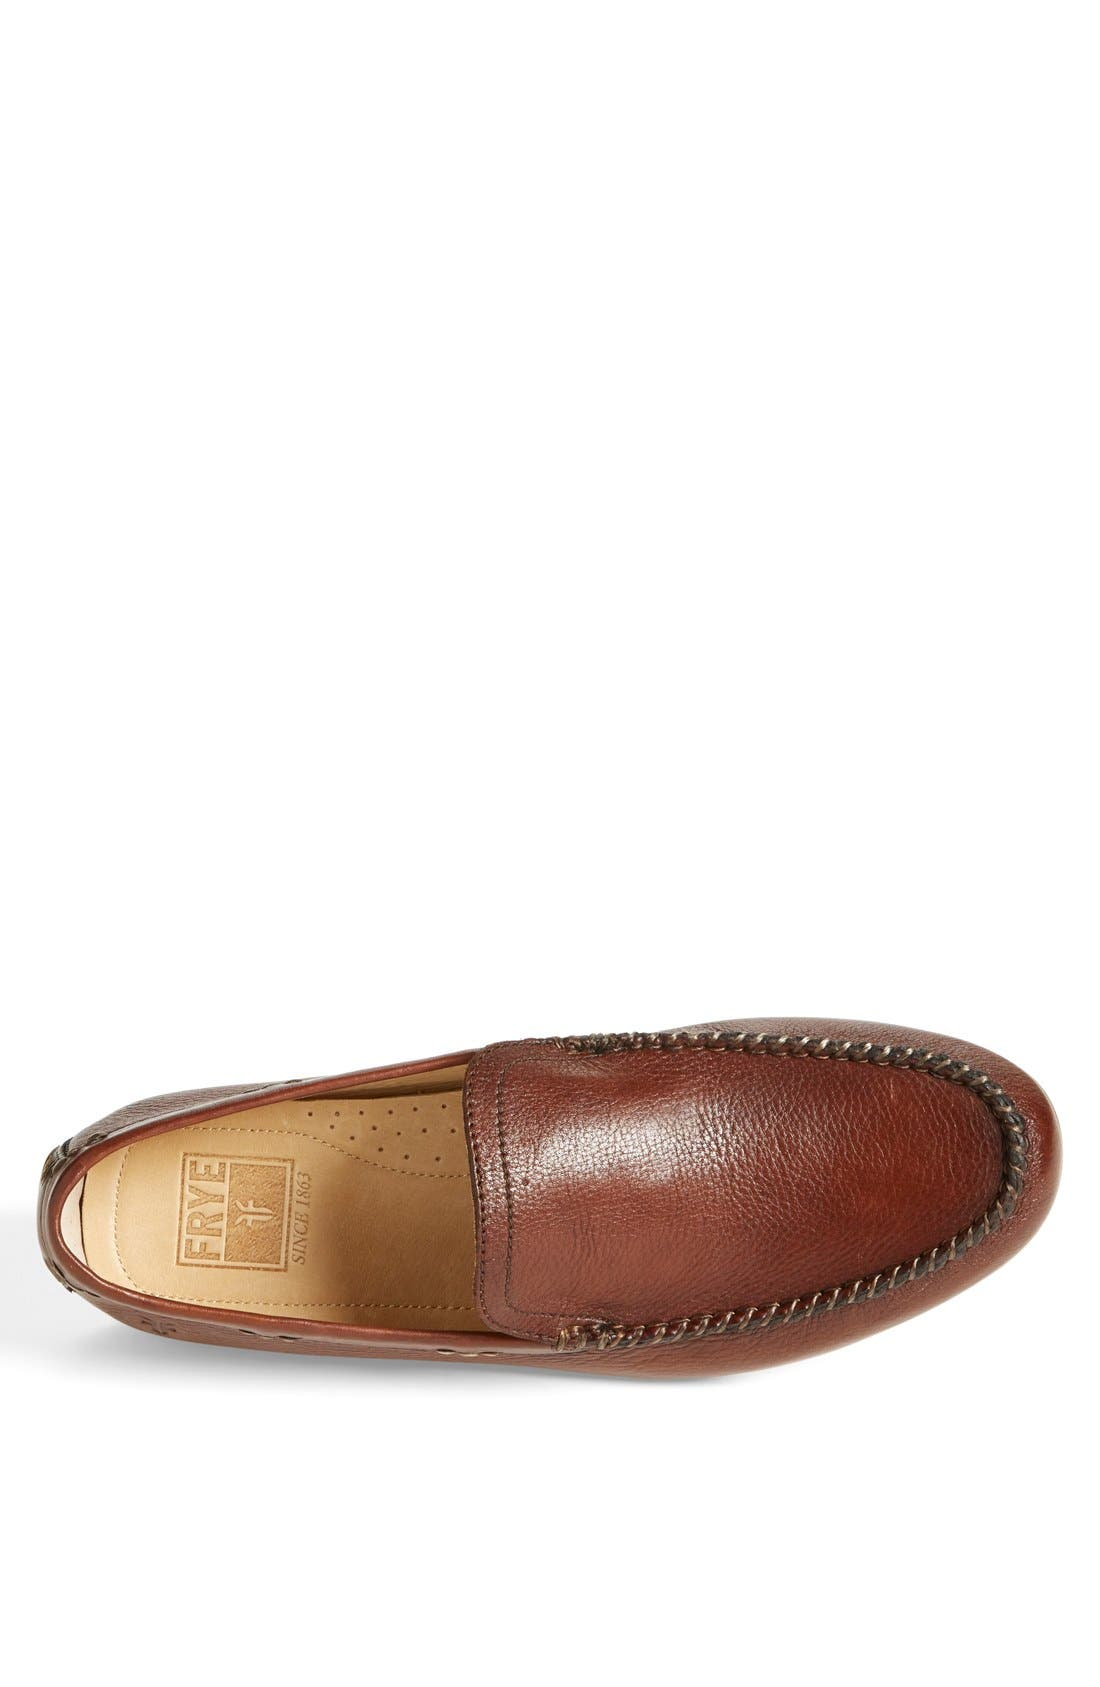 Alternate Image 3  - Frye 'Lewis' Venetian Loafer (Men)